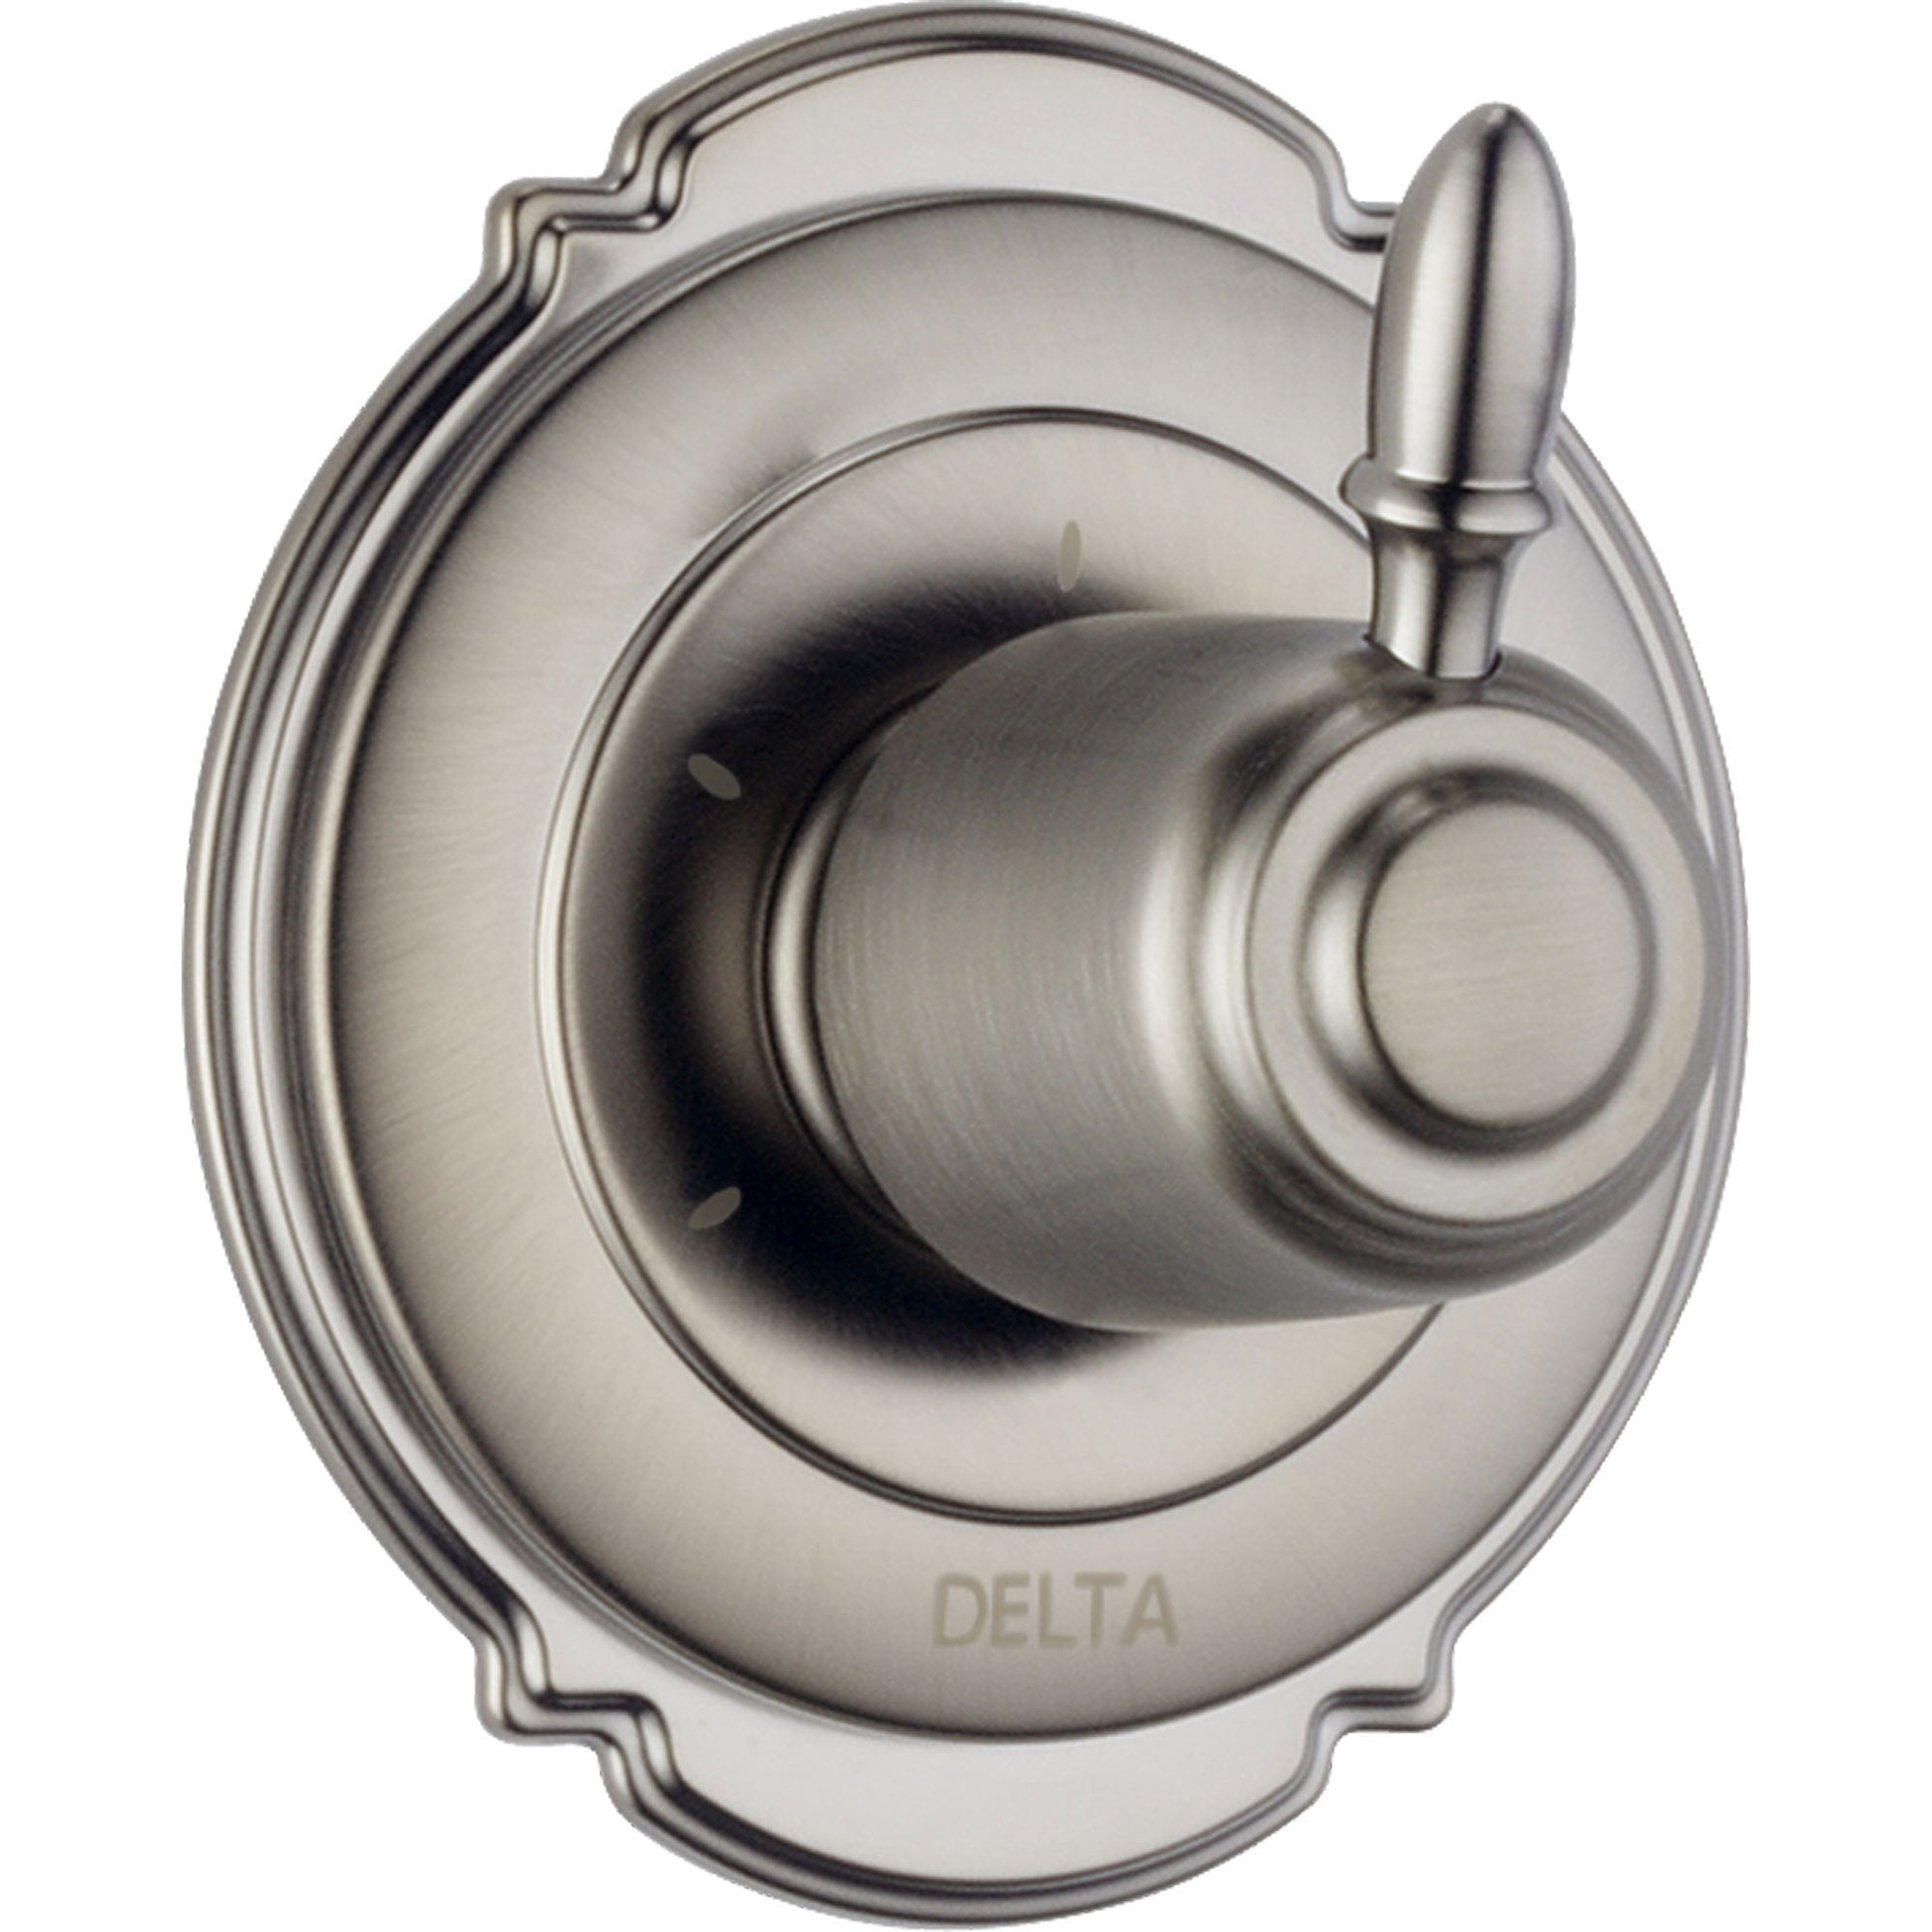 Delta Victorian 3-Setting Stainless Steel Finish Shower Diverter Trim 560974